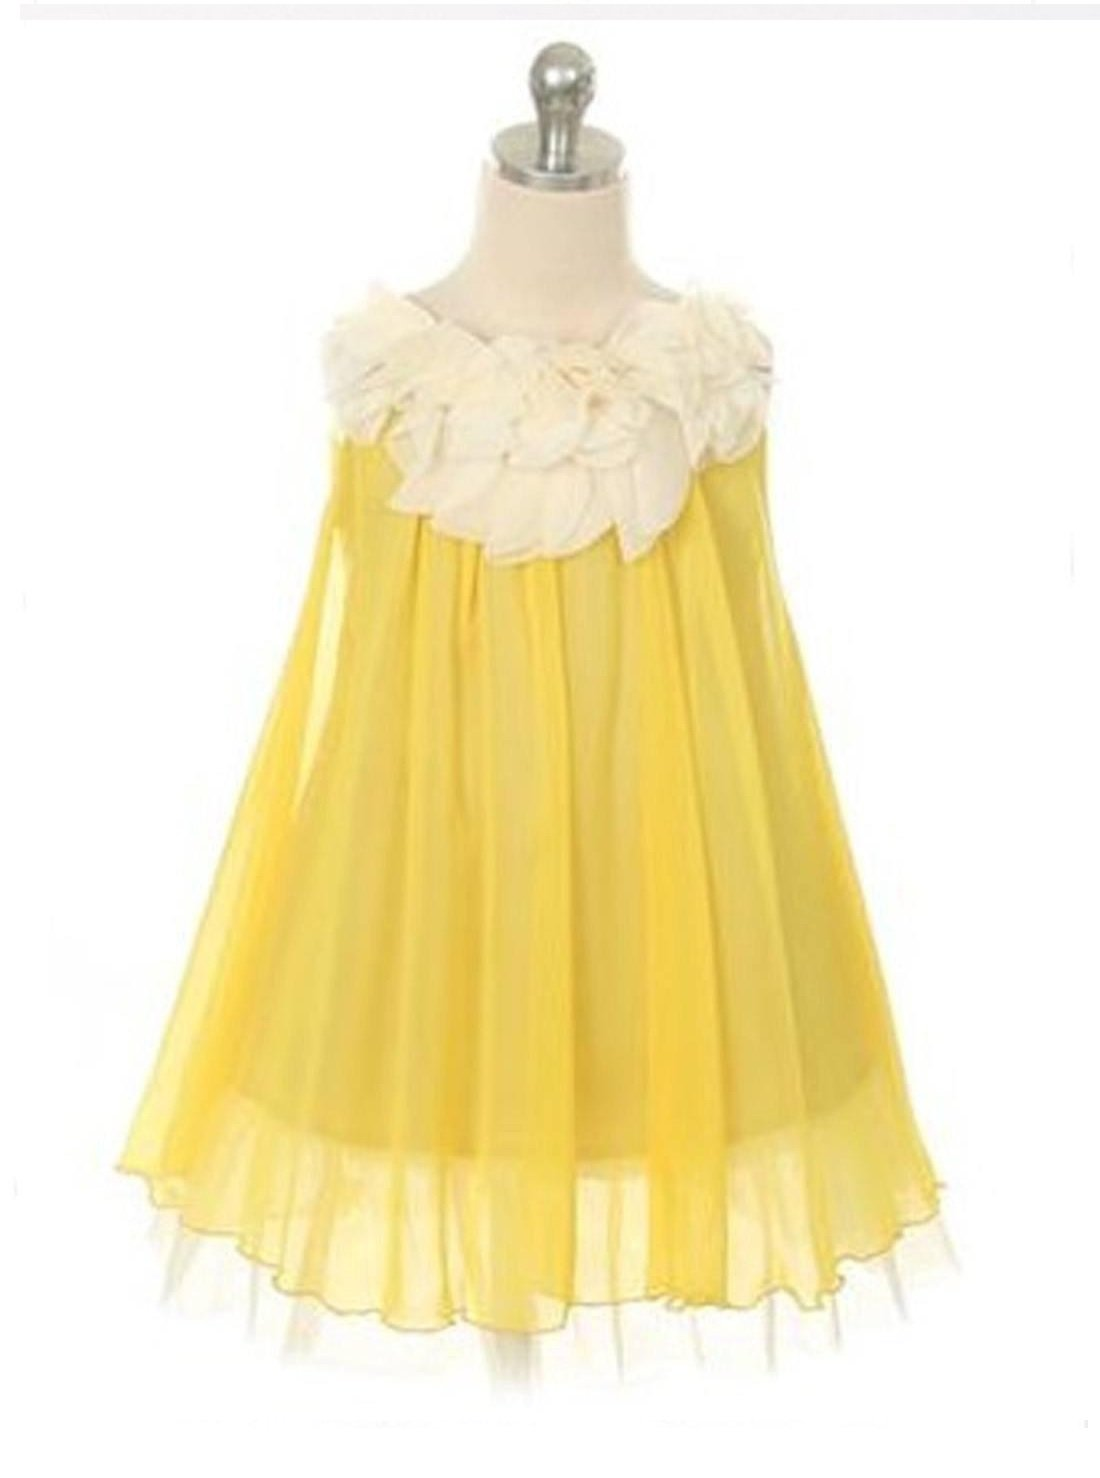 Flower Girl Dress Chic Chiffon Girl Dress With Ivory Flower NecklineYell Party Dress Special Occasion Dress